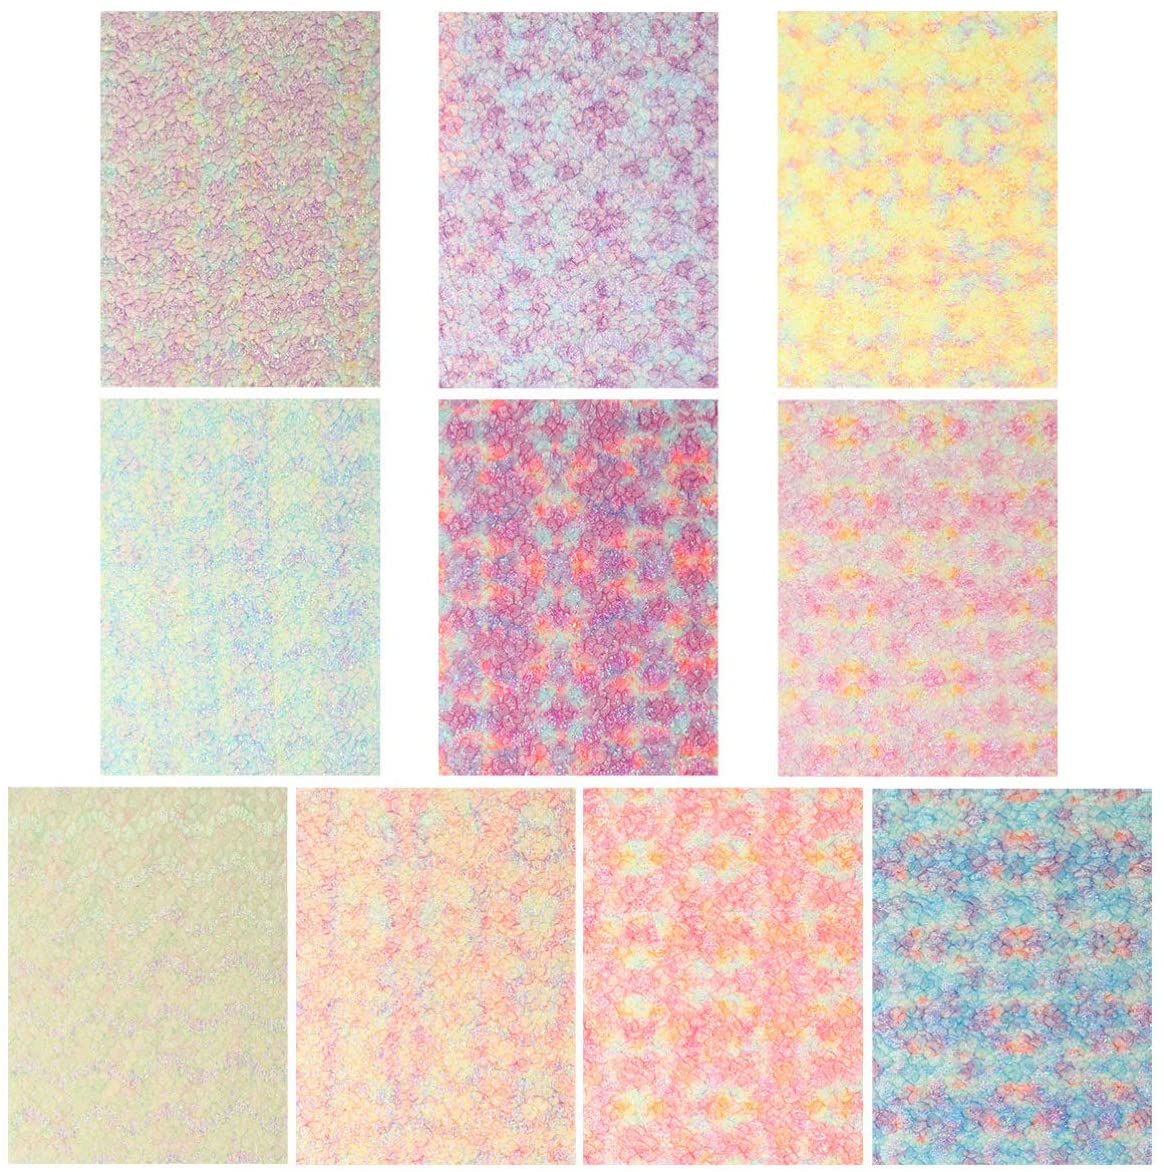 EXCEART 10pcs Rainbow Glitter Sequins Faux Leather Sheets Christmas Themed Printed Synthetic Leather Sheet for Earrings Hair Bows and Craft Making